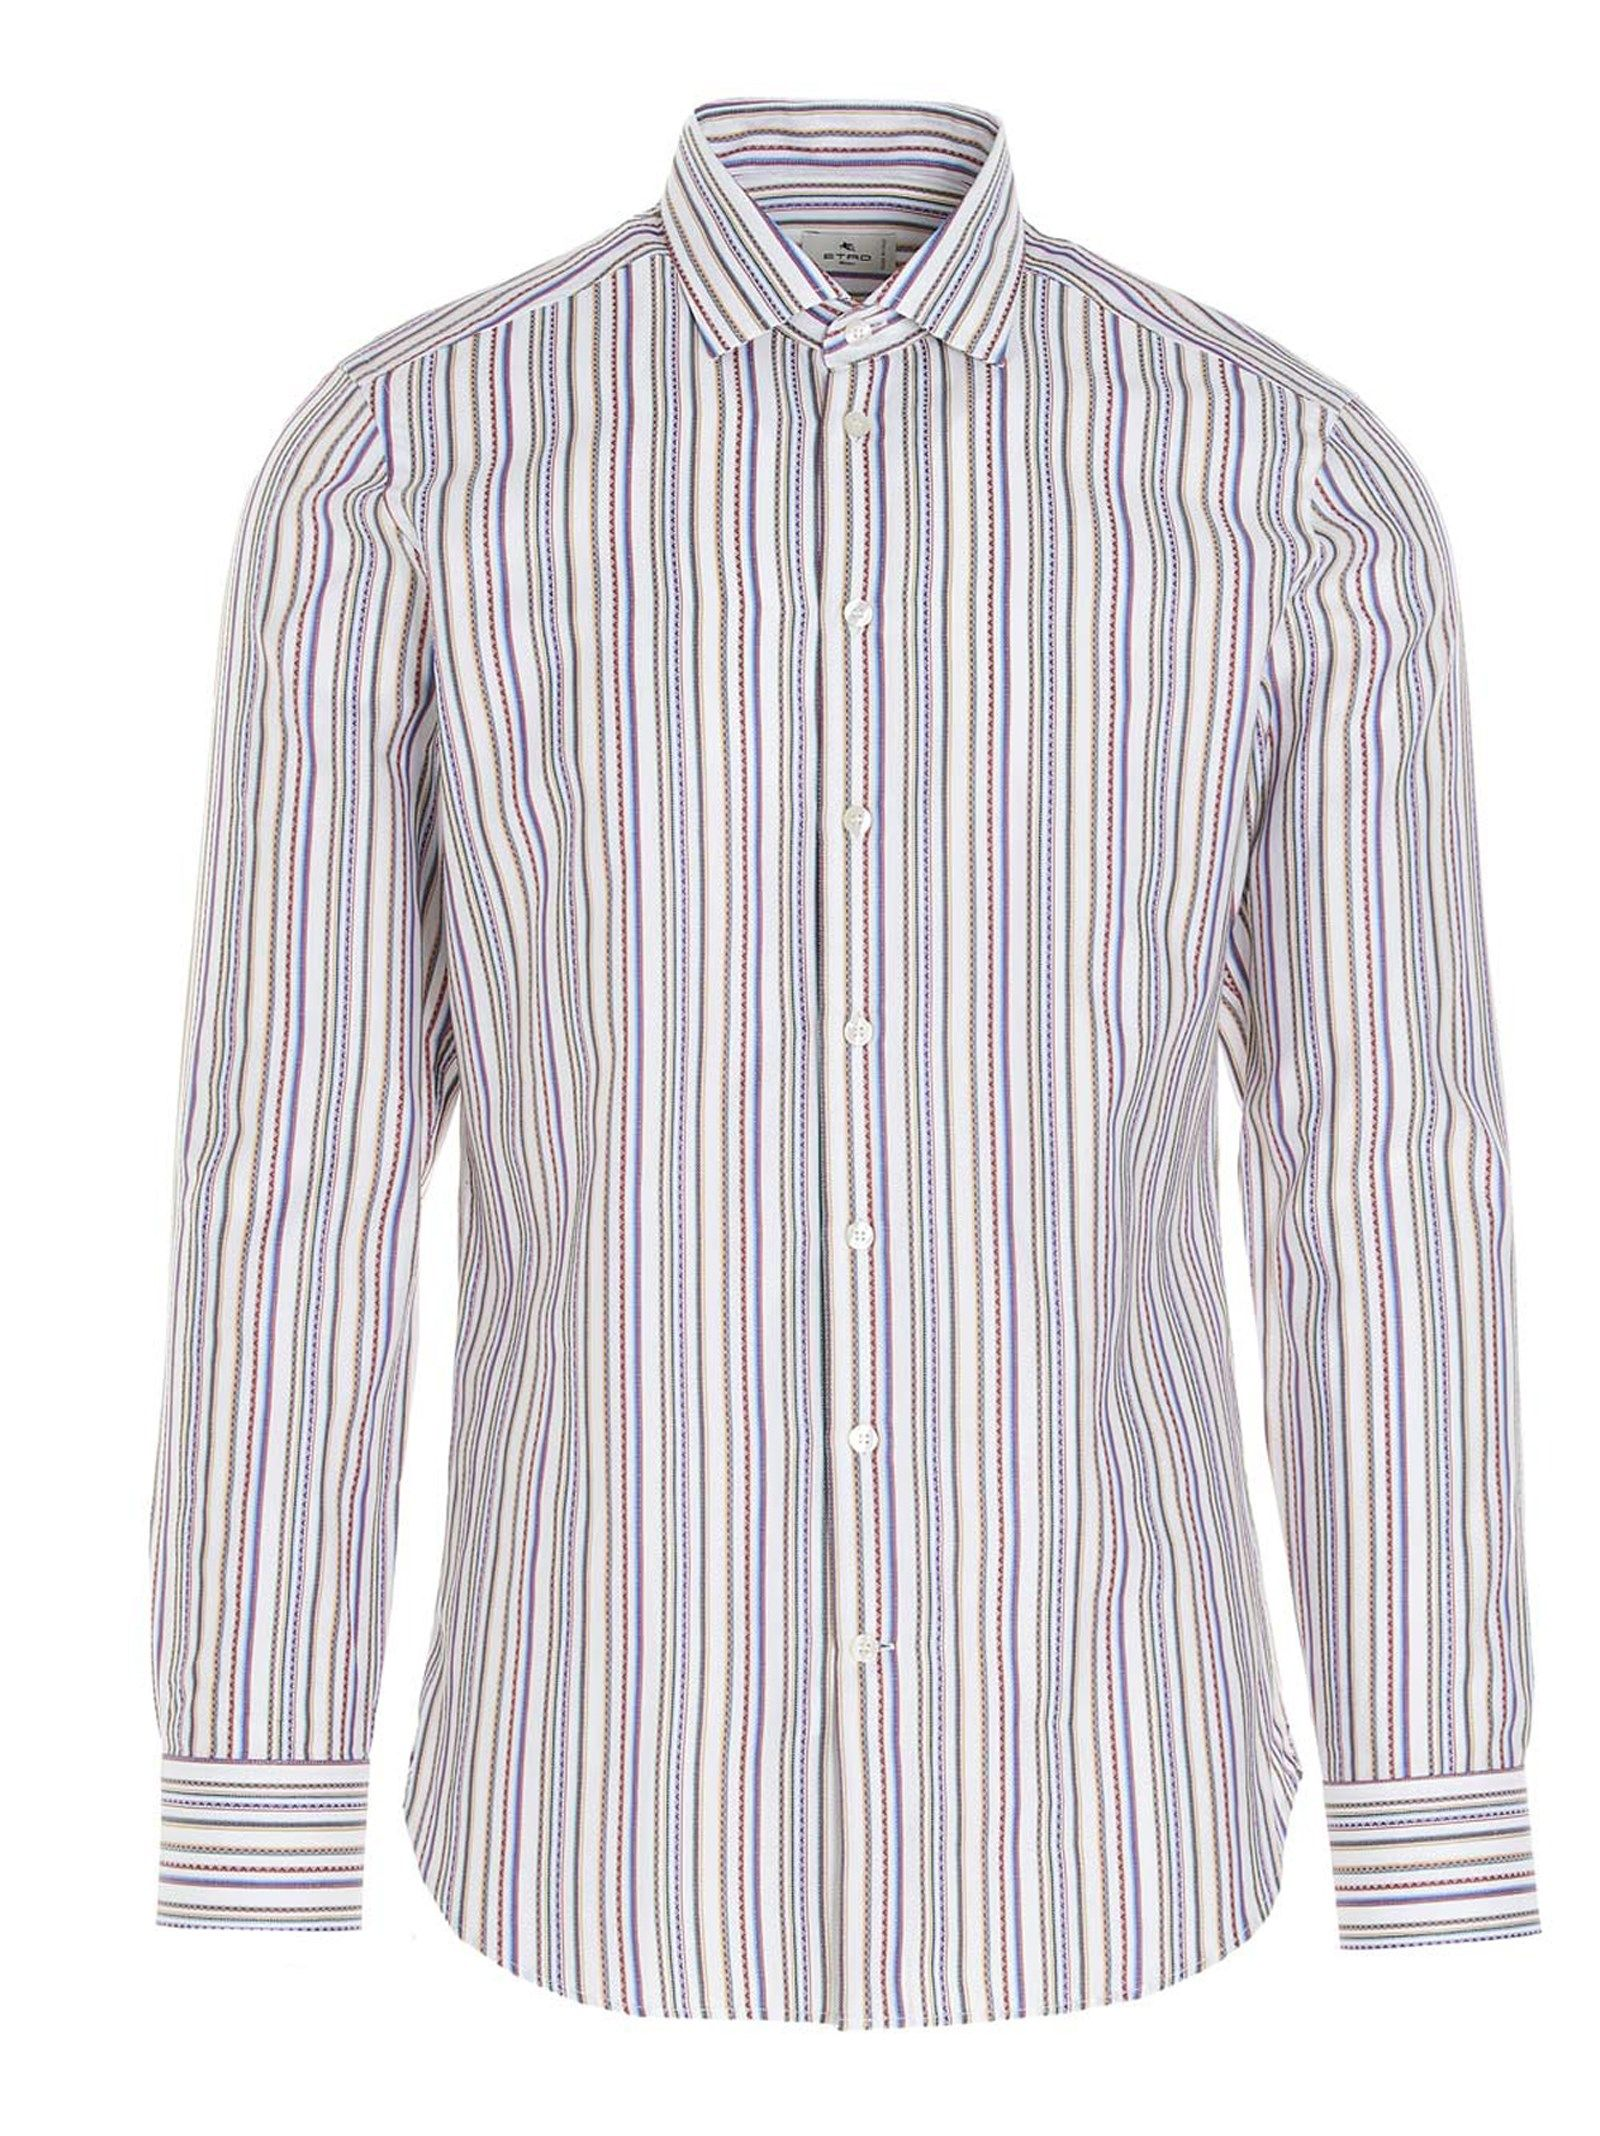 Etro ETRO MEN'S 1145161168000 MULTICOLOR OTHER MATERIALS SHIRT